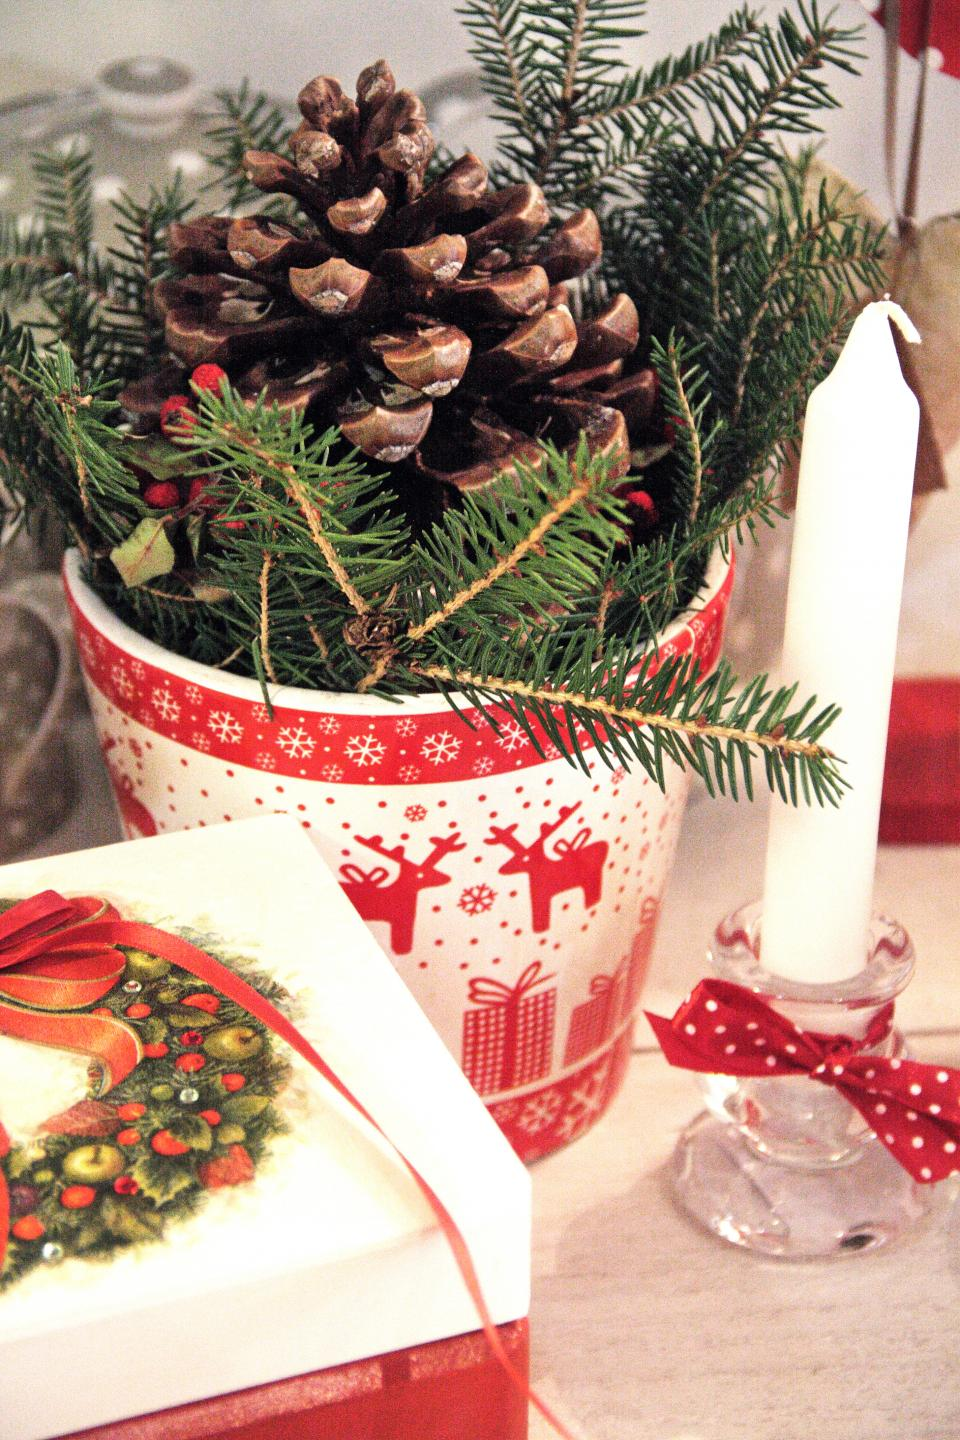 christmas decorations decor festive holidays gifts pine cones candles presents